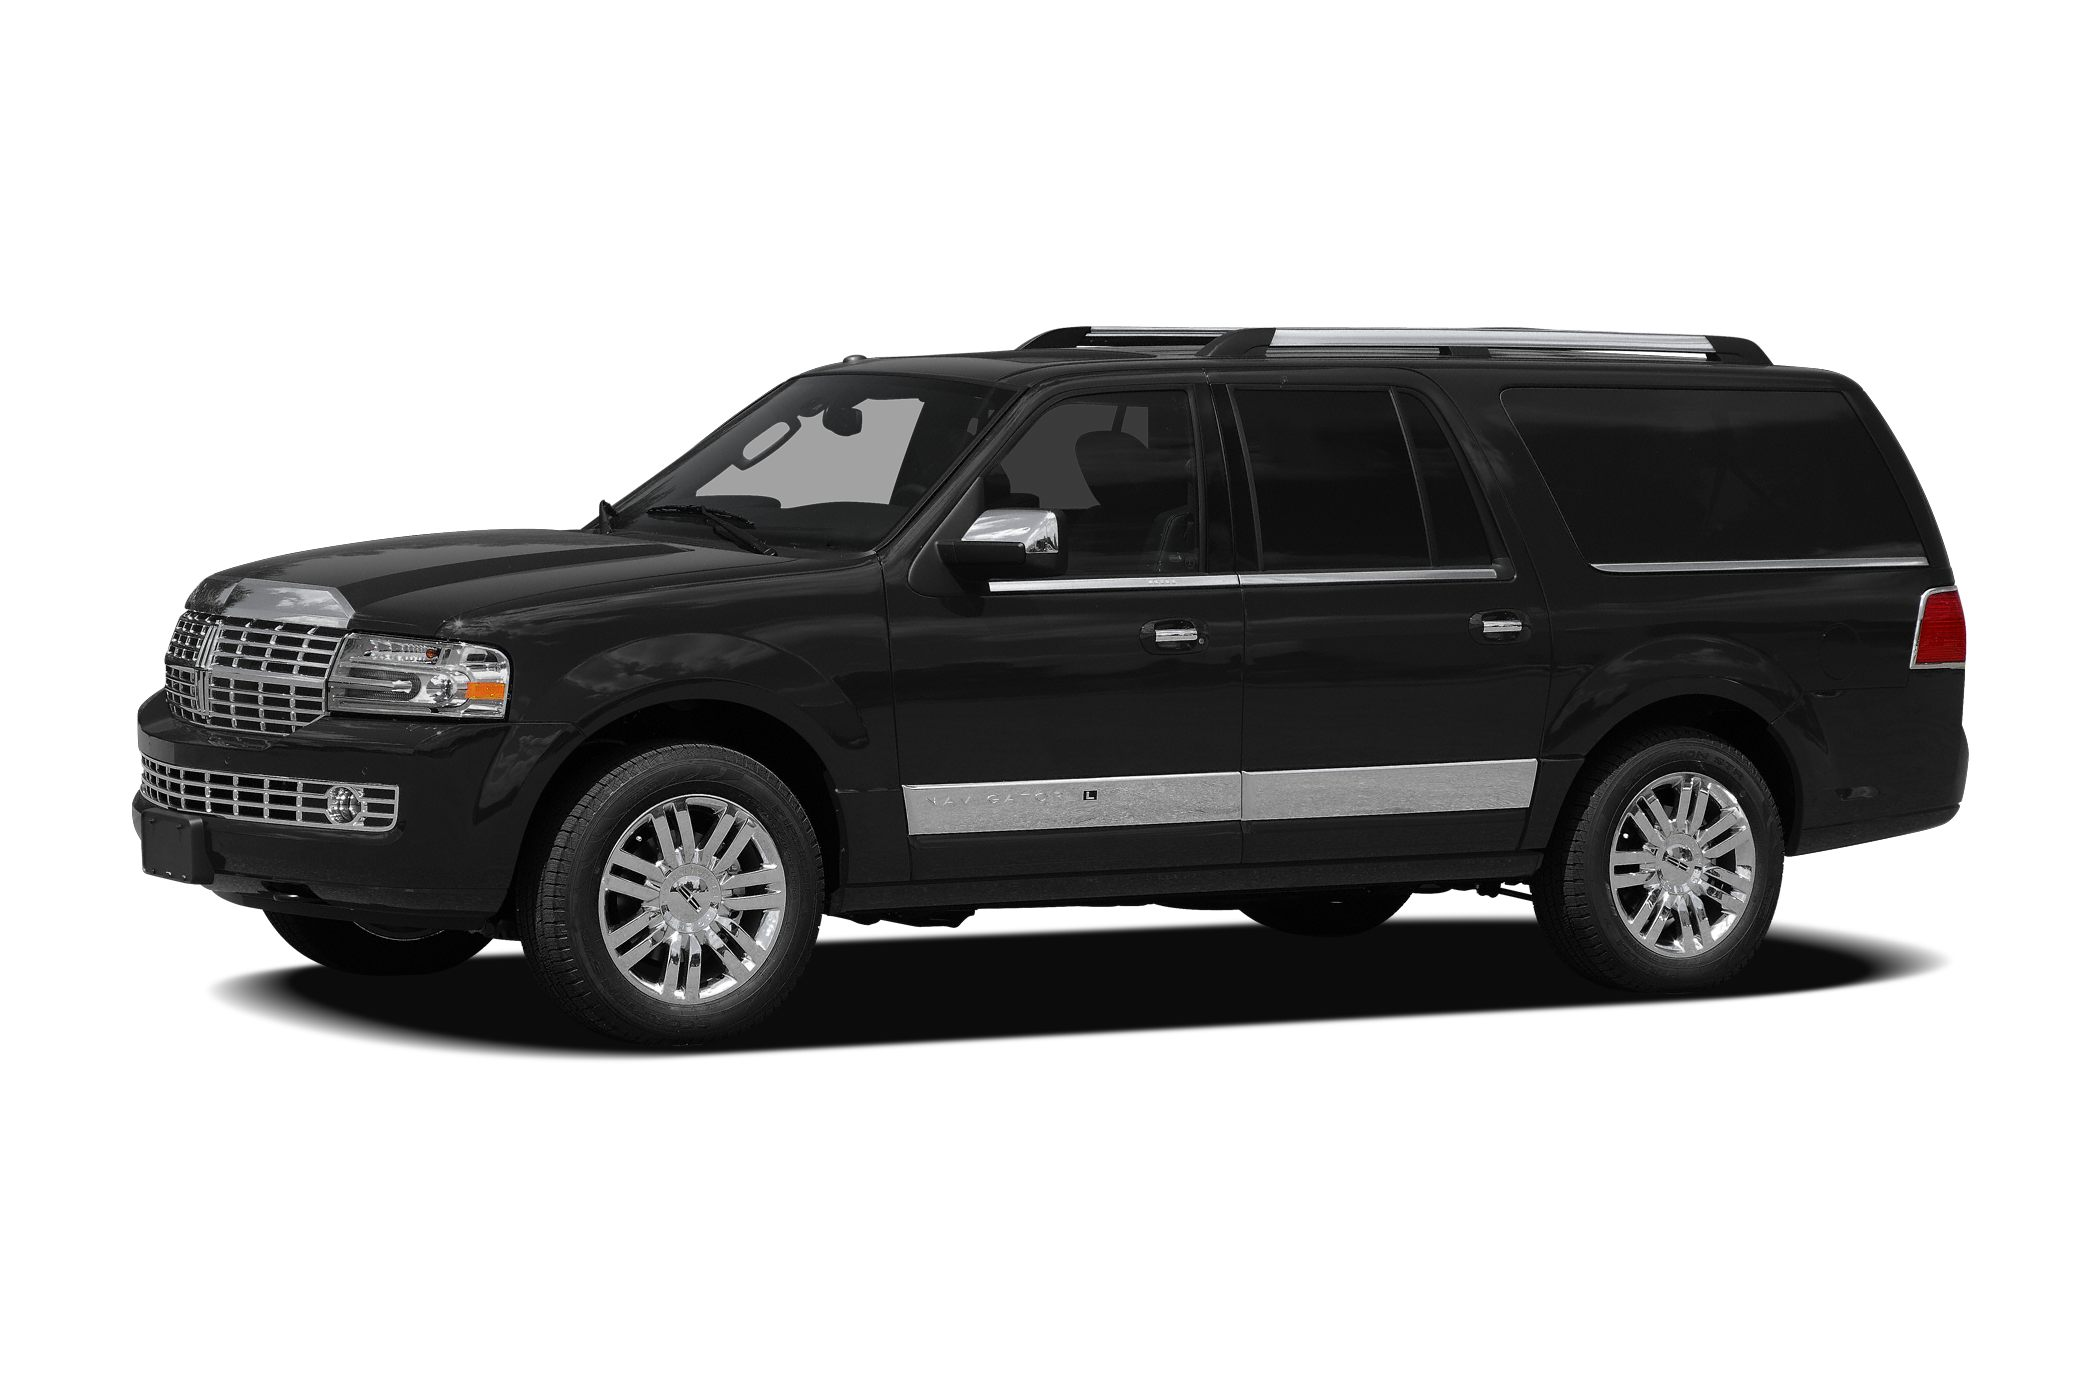 2011 Lincoln Navigator L SUV for sale in Henderson for $35,999 with 43,833 miles.